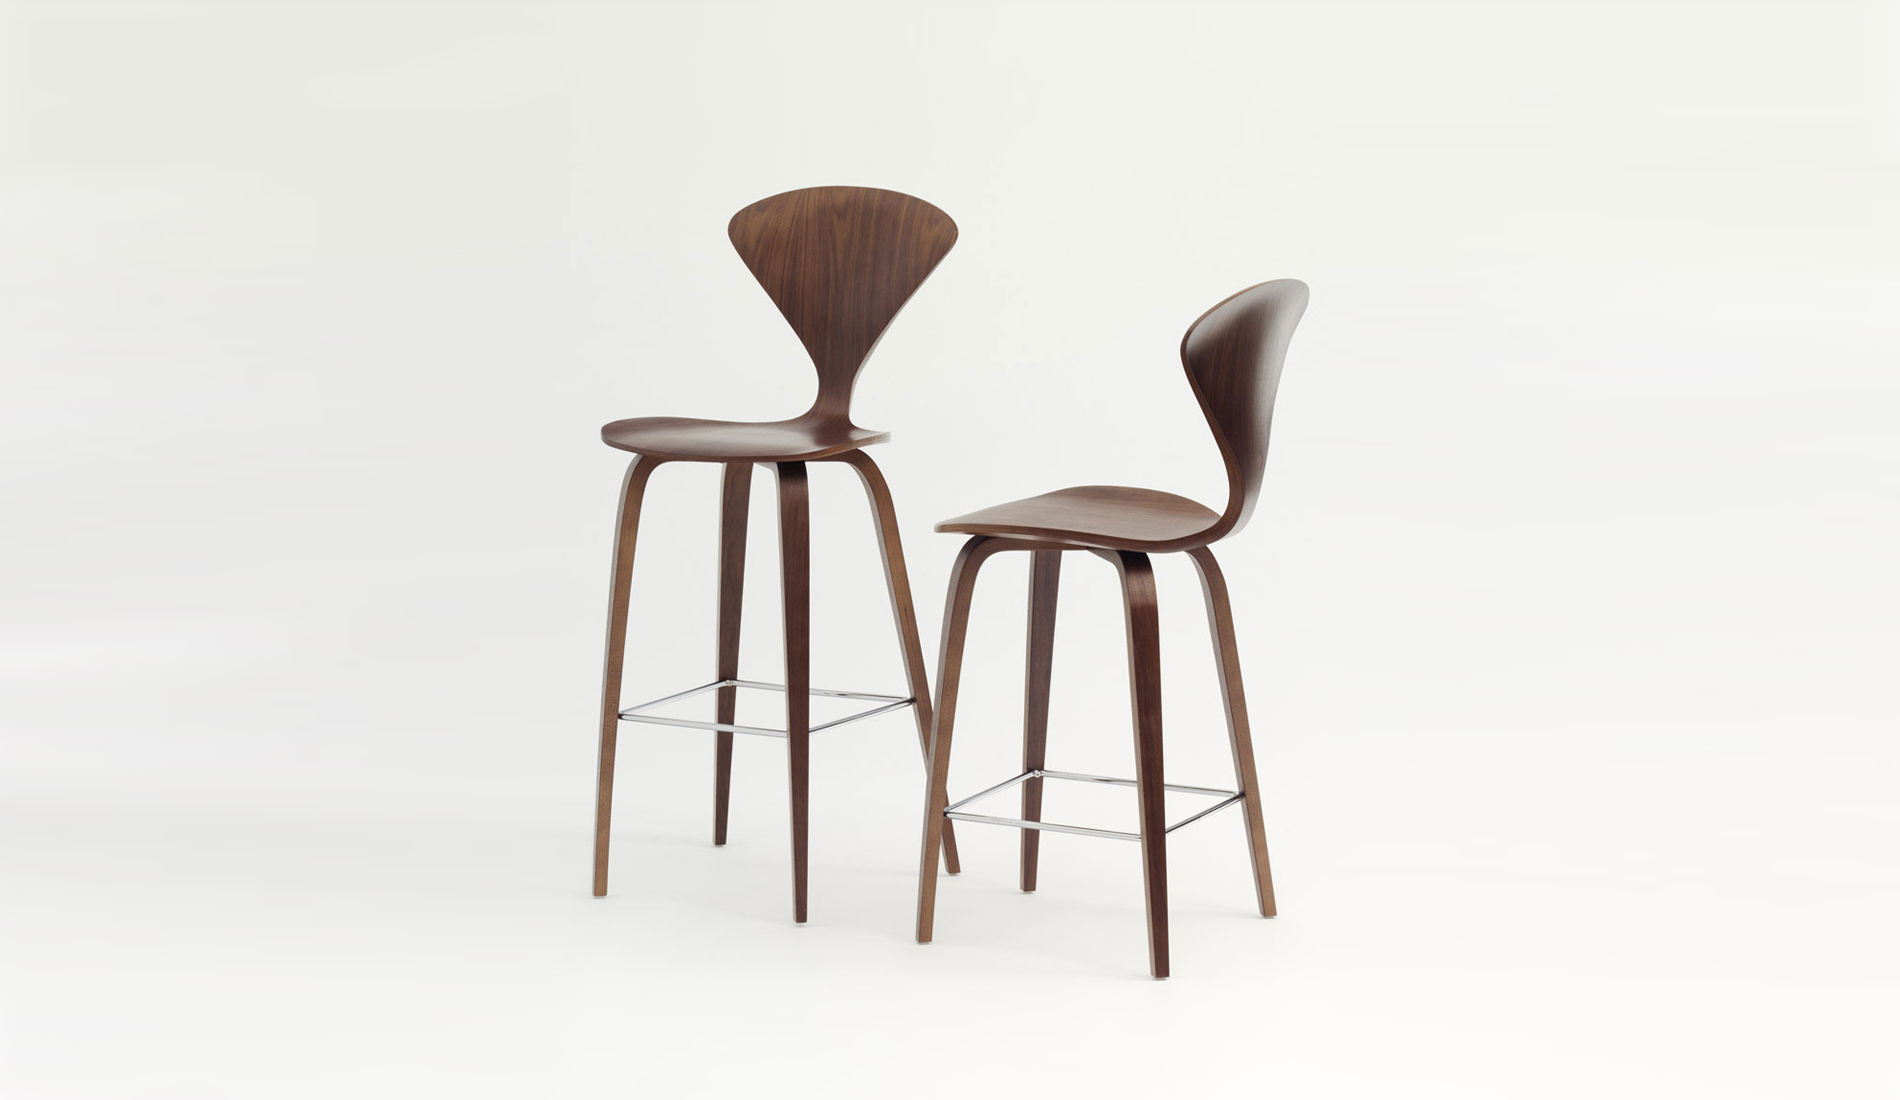 Stool With Wooden Base By Cherner Available In South Africa